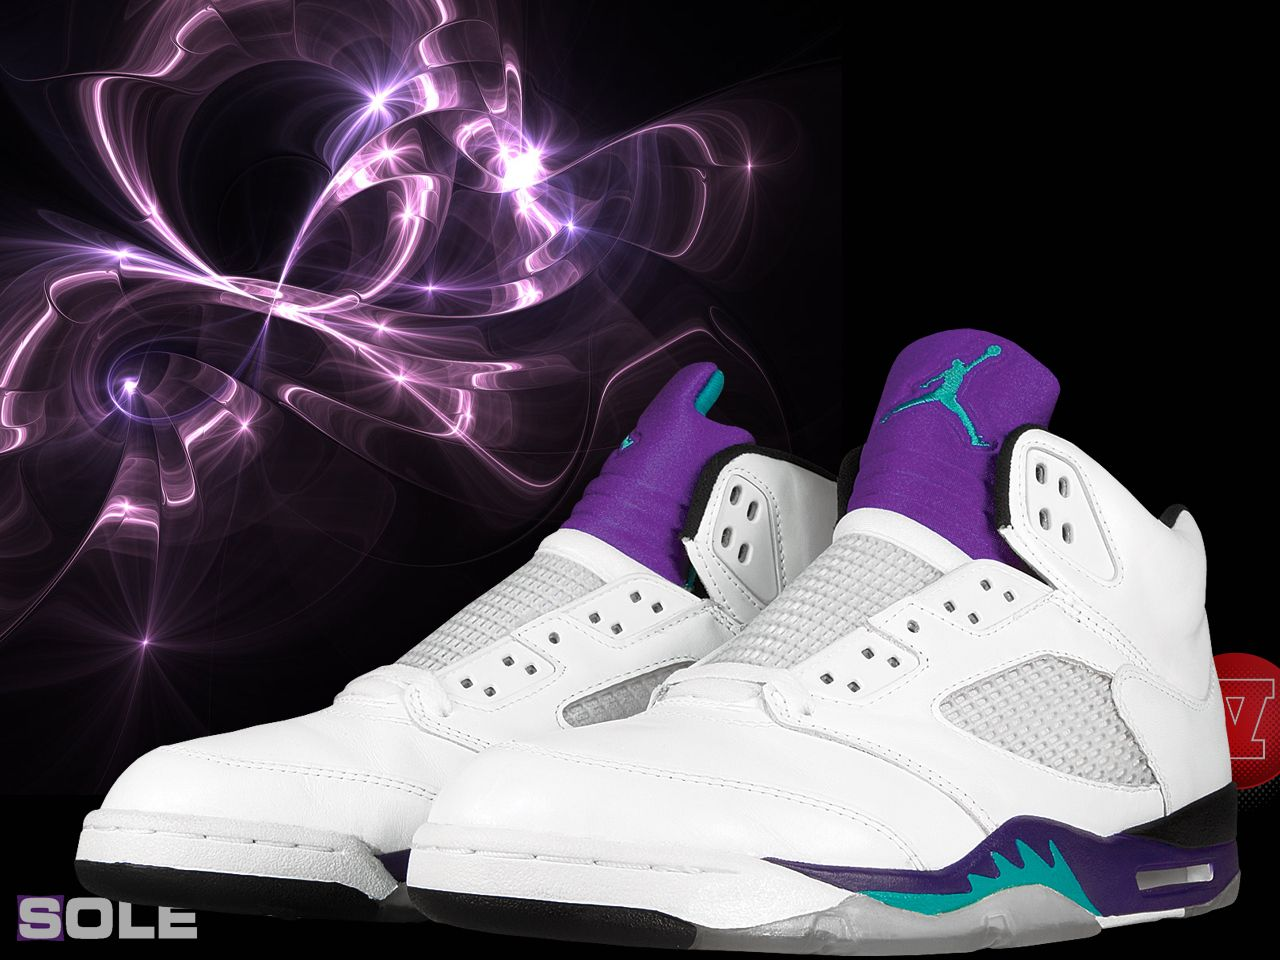 new styles fefb4 dacae Michael Jordan Shoes For Girls   Air Jordan Shoes Wallpaper   Shoes for  Girls, Women, Men, and Boys